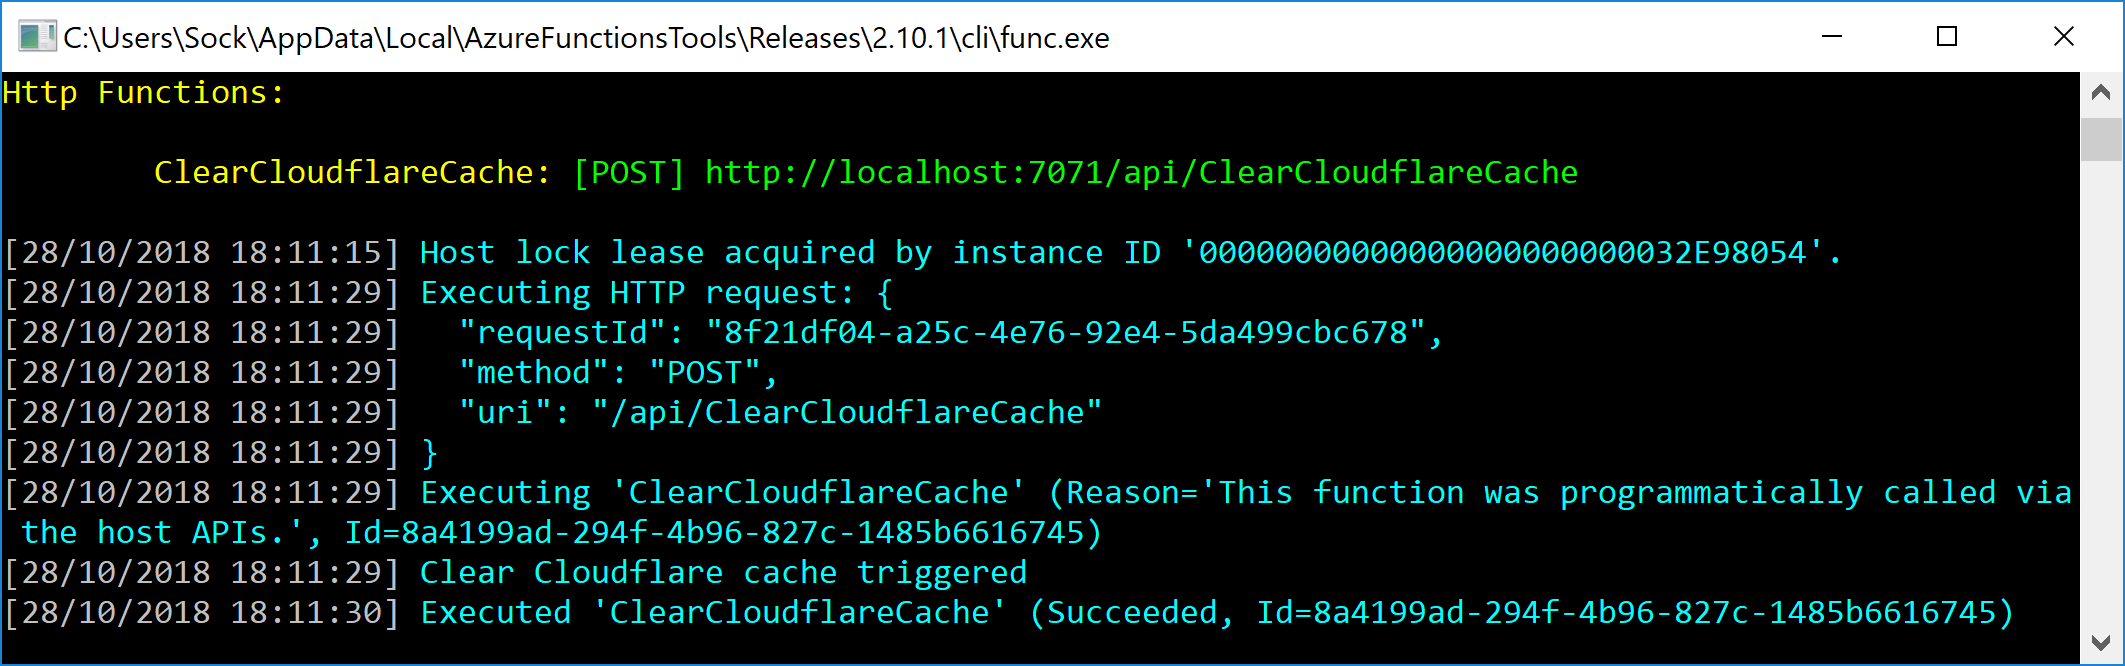 Triggering a build with Azure Functions